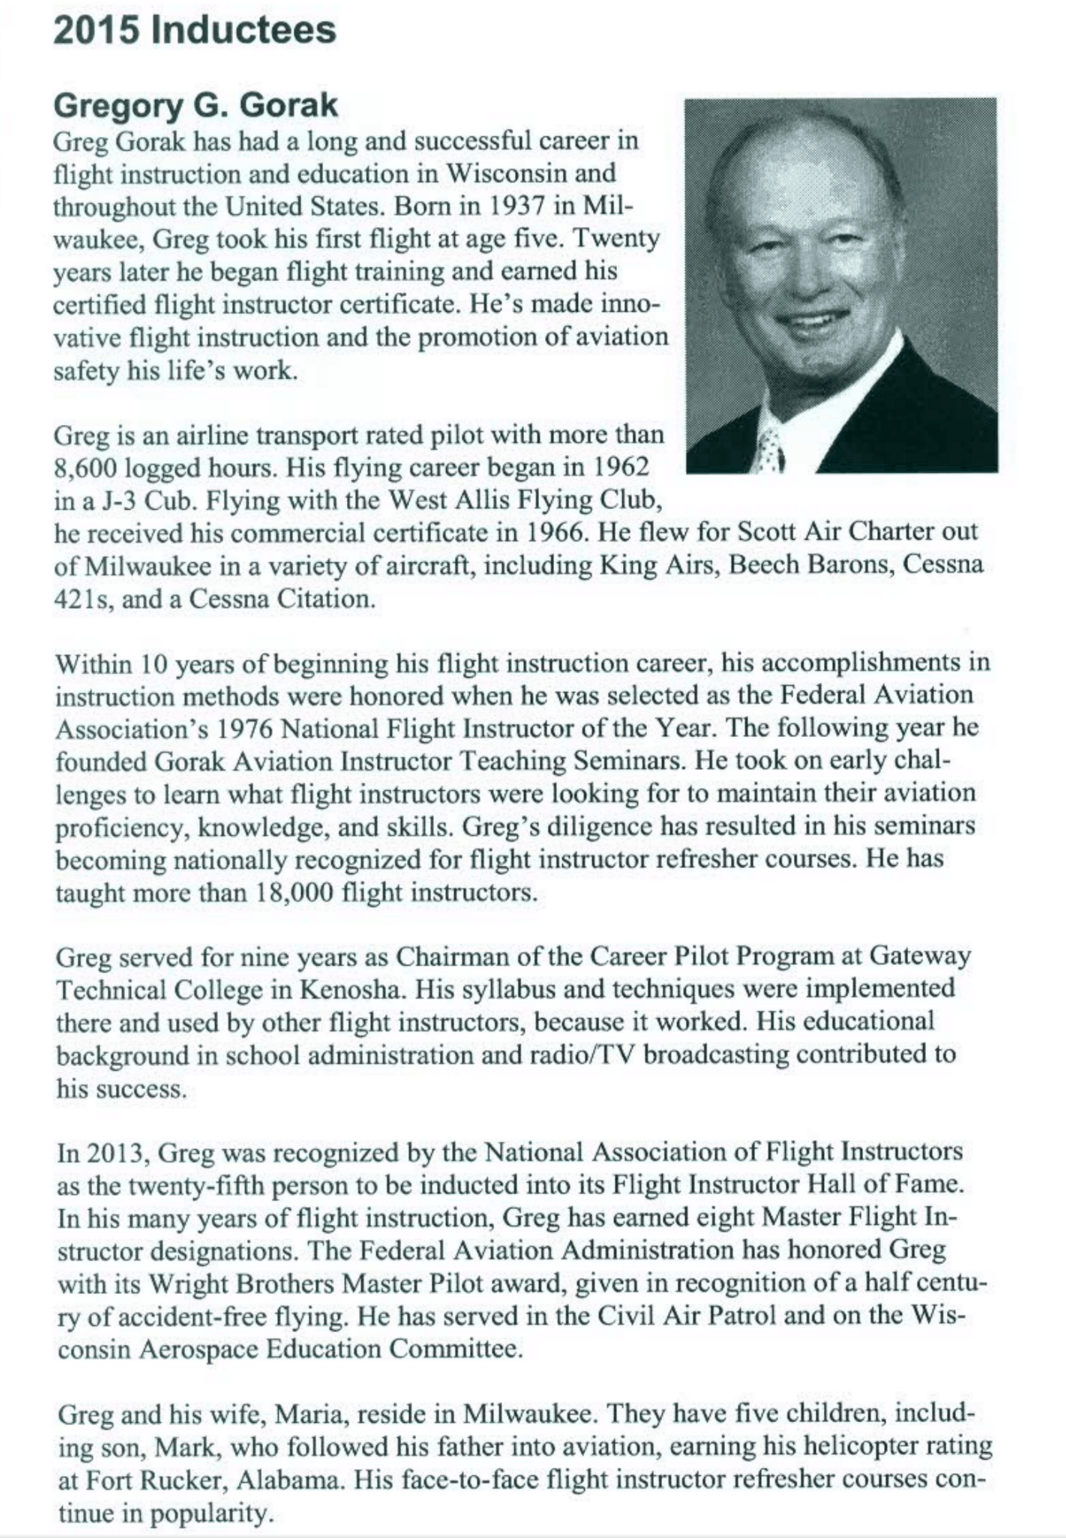 Elite Member Greg Gorak Inducted Into Wisconsin Aviation Hall of Fame